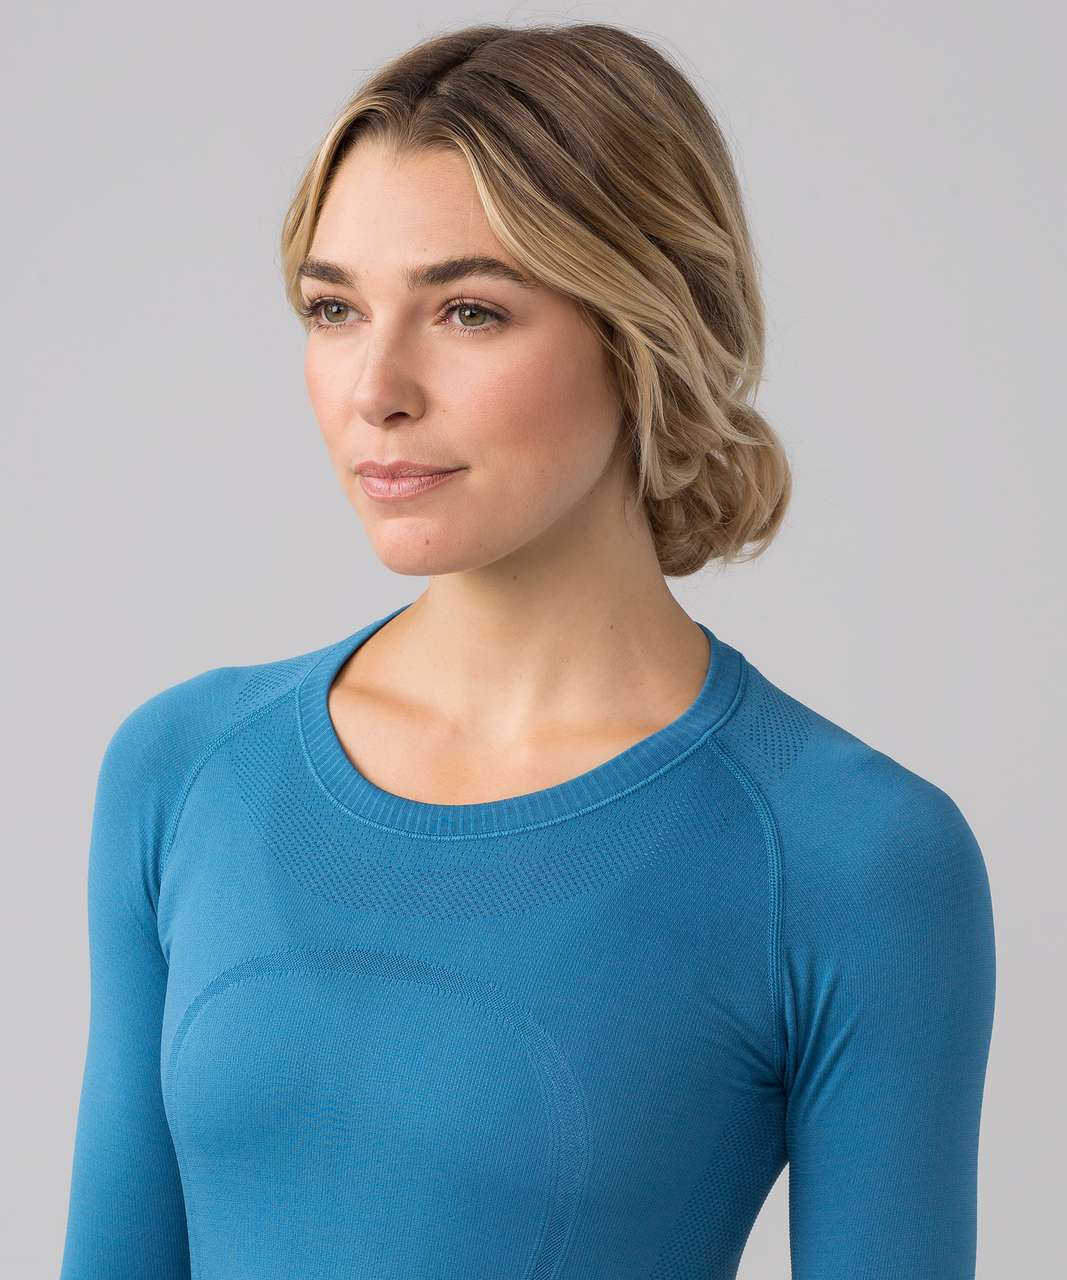 Lululemon Swiftly Tech Long Sleeve Crew - Pewter Blue / Pewter Blue